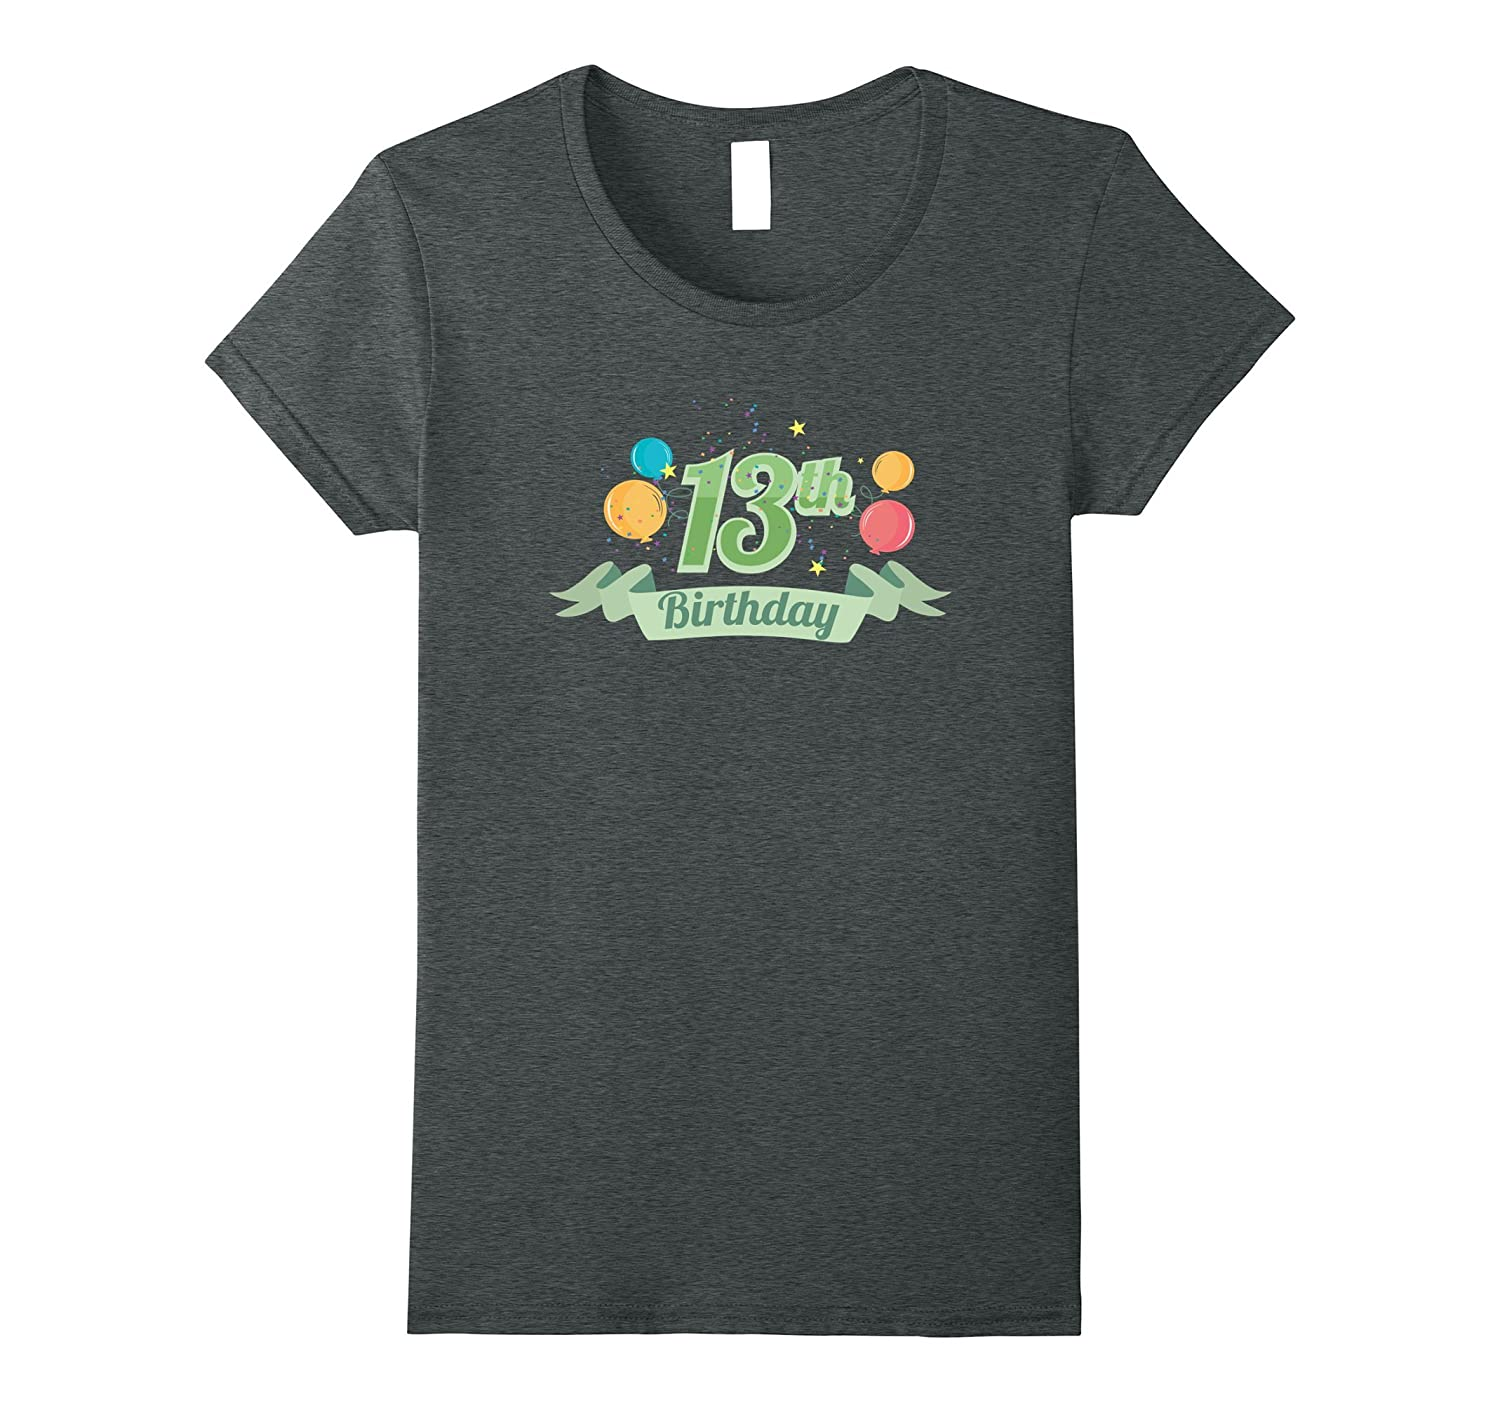 13th Birthday Shirt-Awarplus